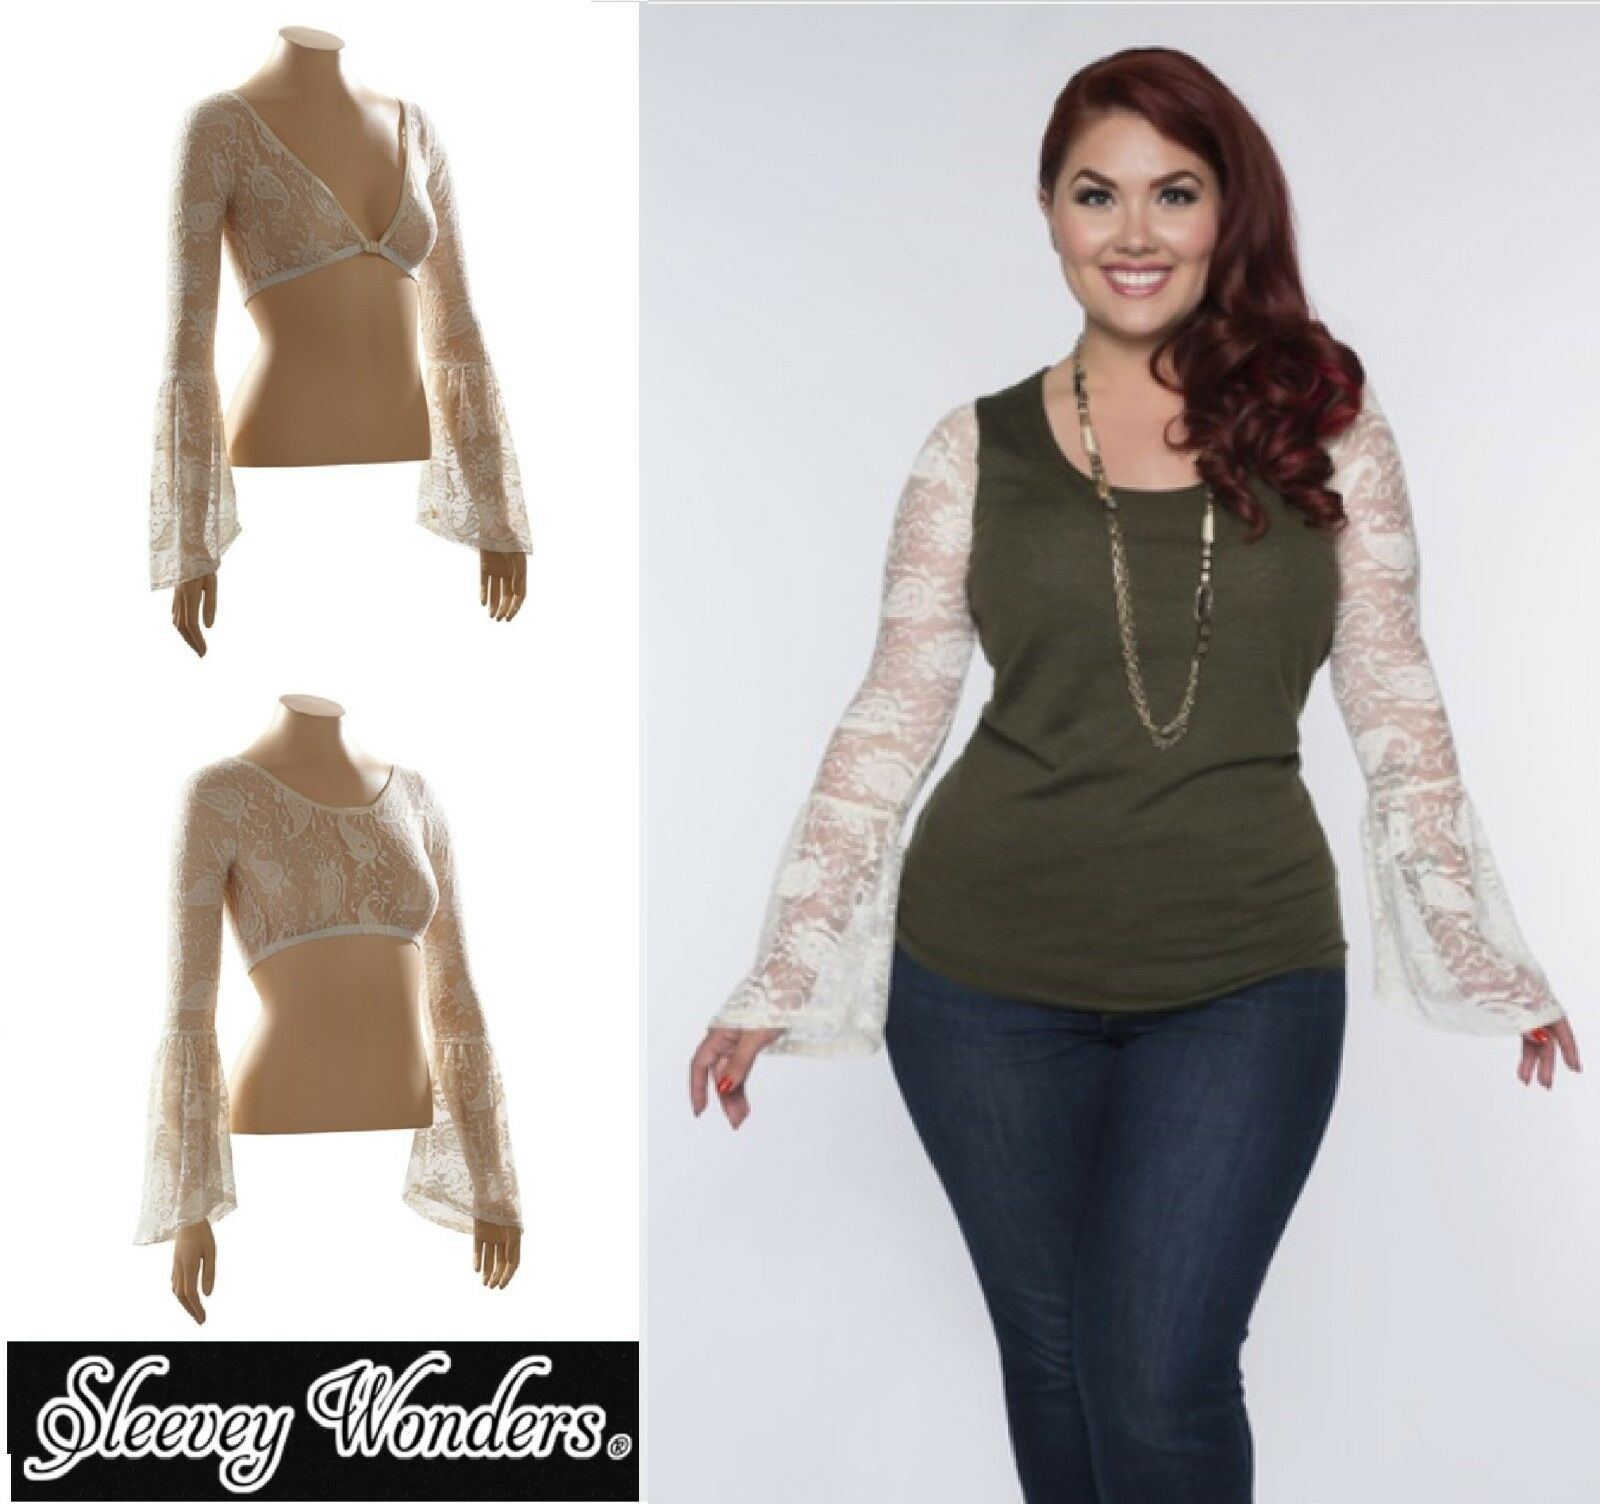 d42bb619e3d51 Details about SLEEVEY WONDERS 40702 BELL-Sleeve SHAPEWEAR SLEEVES TOP  Stretch LACE IVORY PLUS